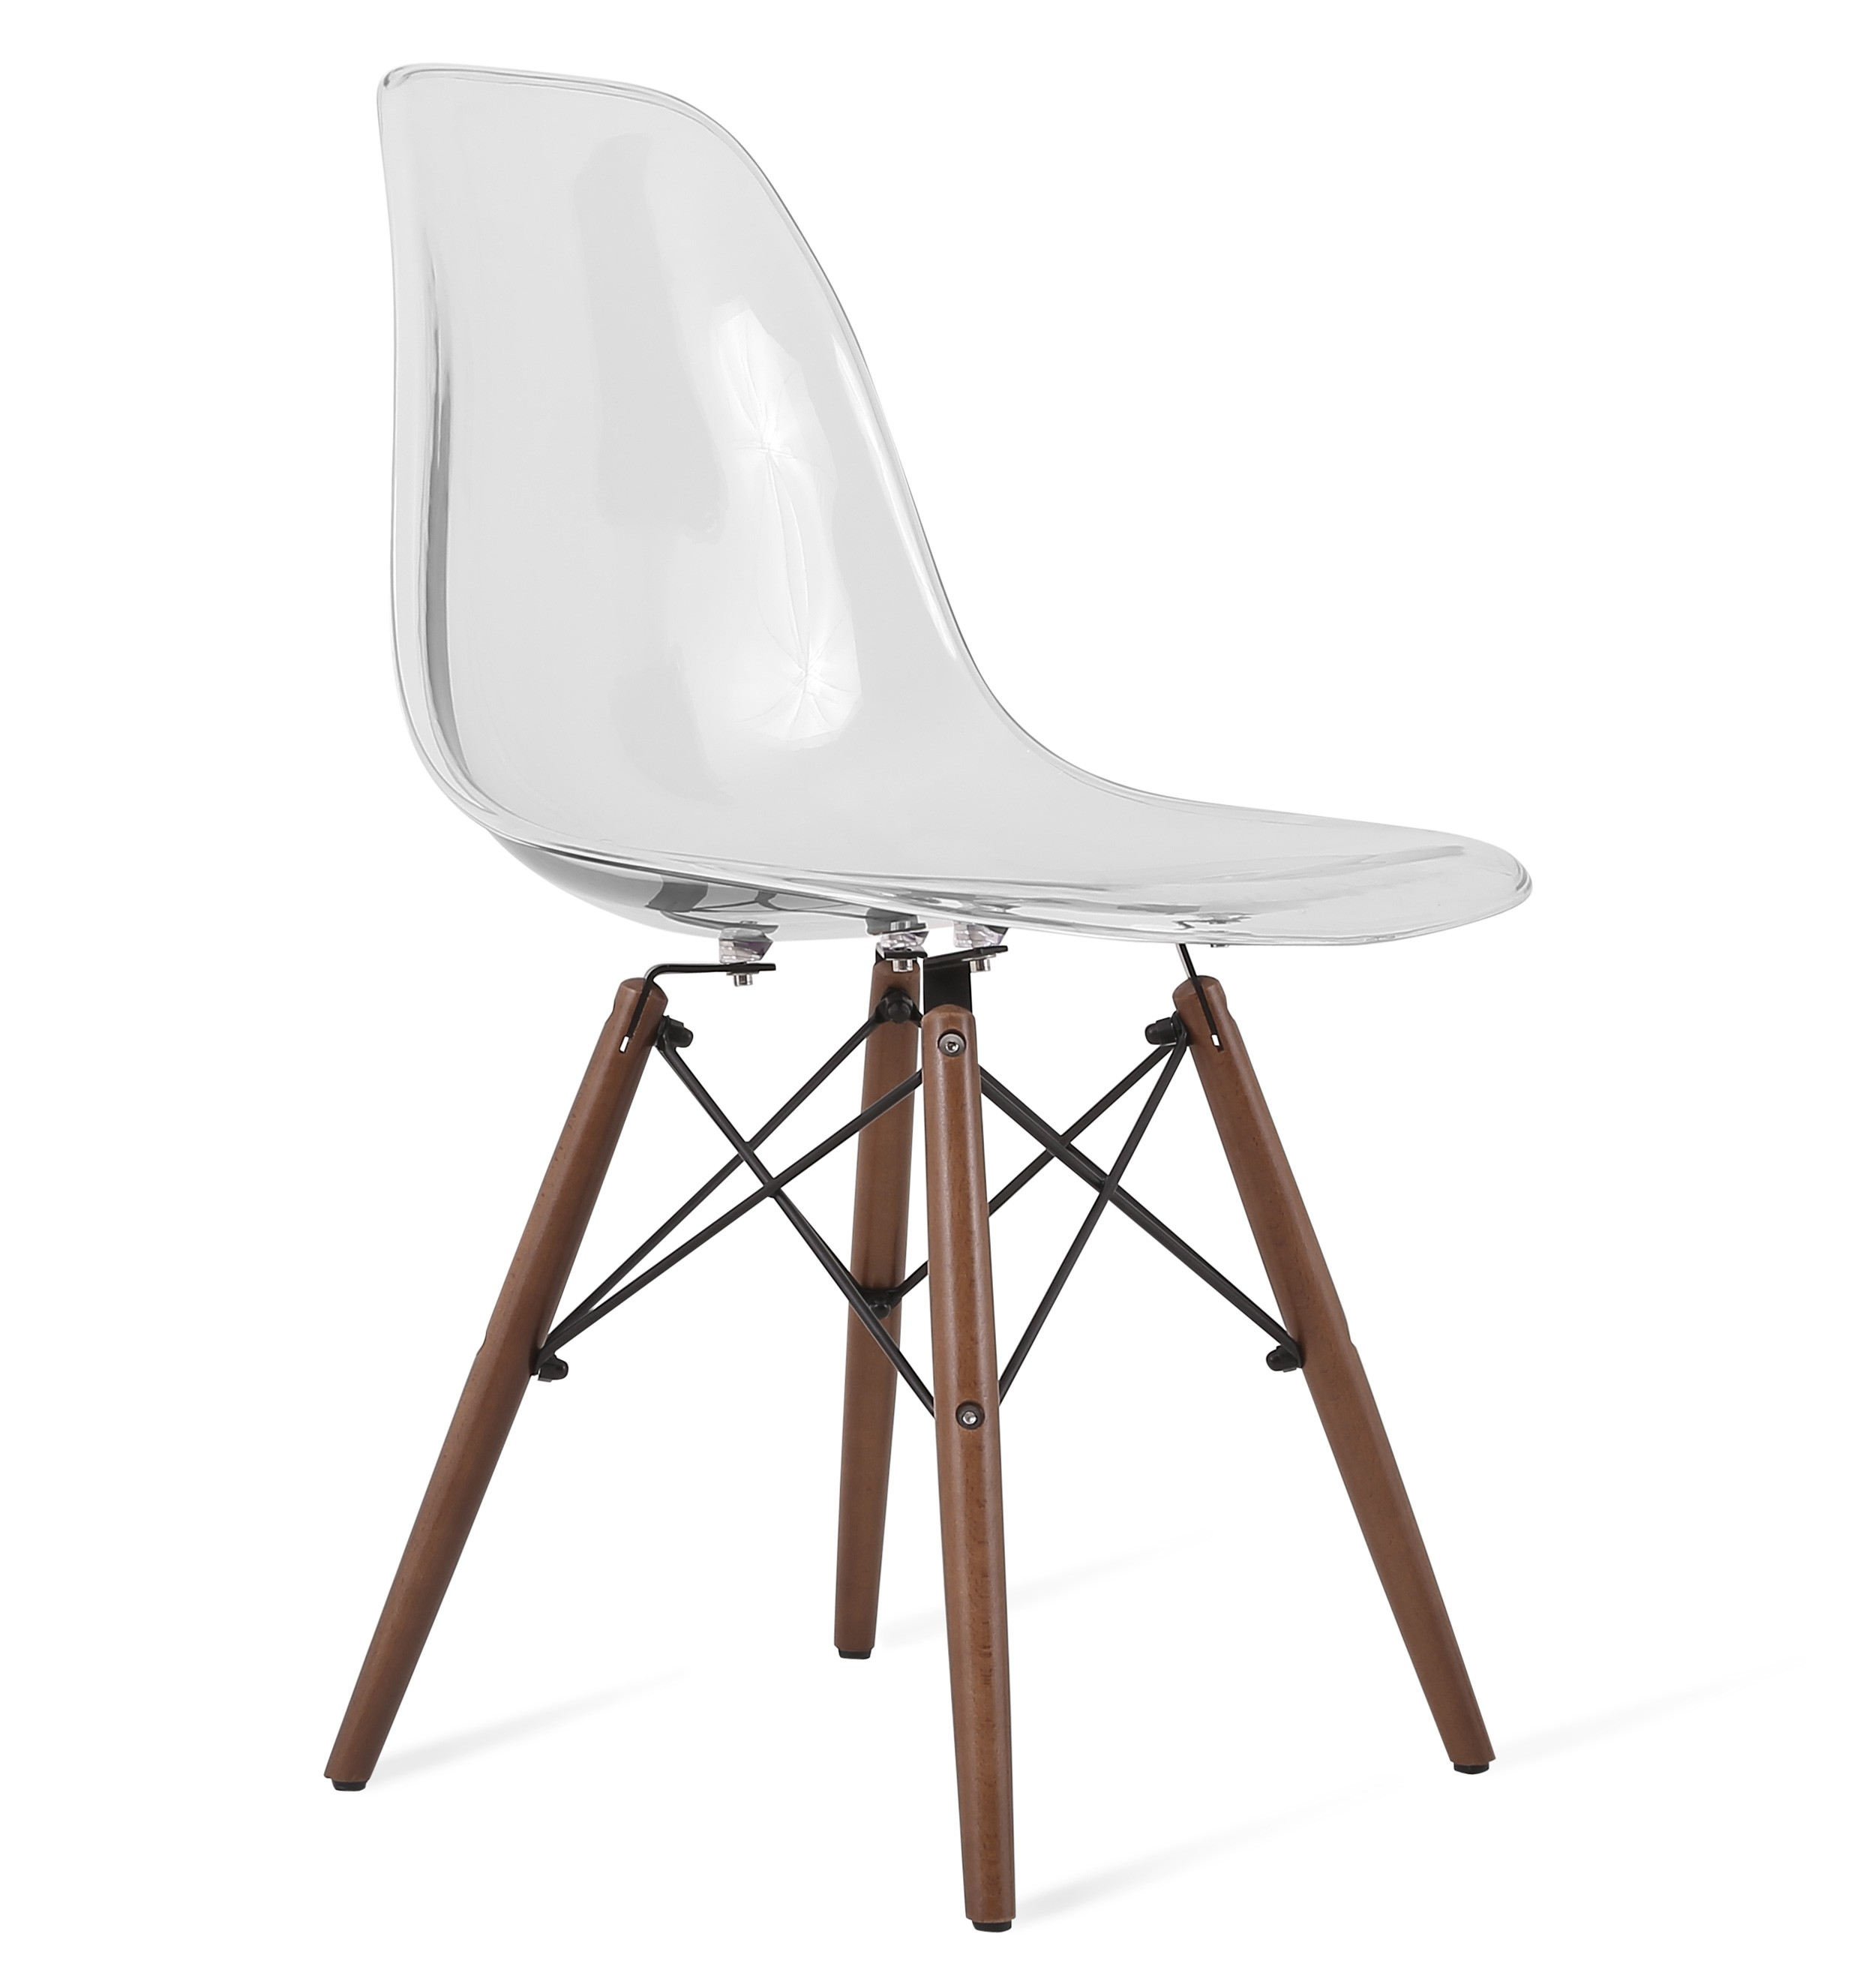 DSW Clear Acrylic Plastic Dining Shell Chair With Dark Walnut Eiffel Legs